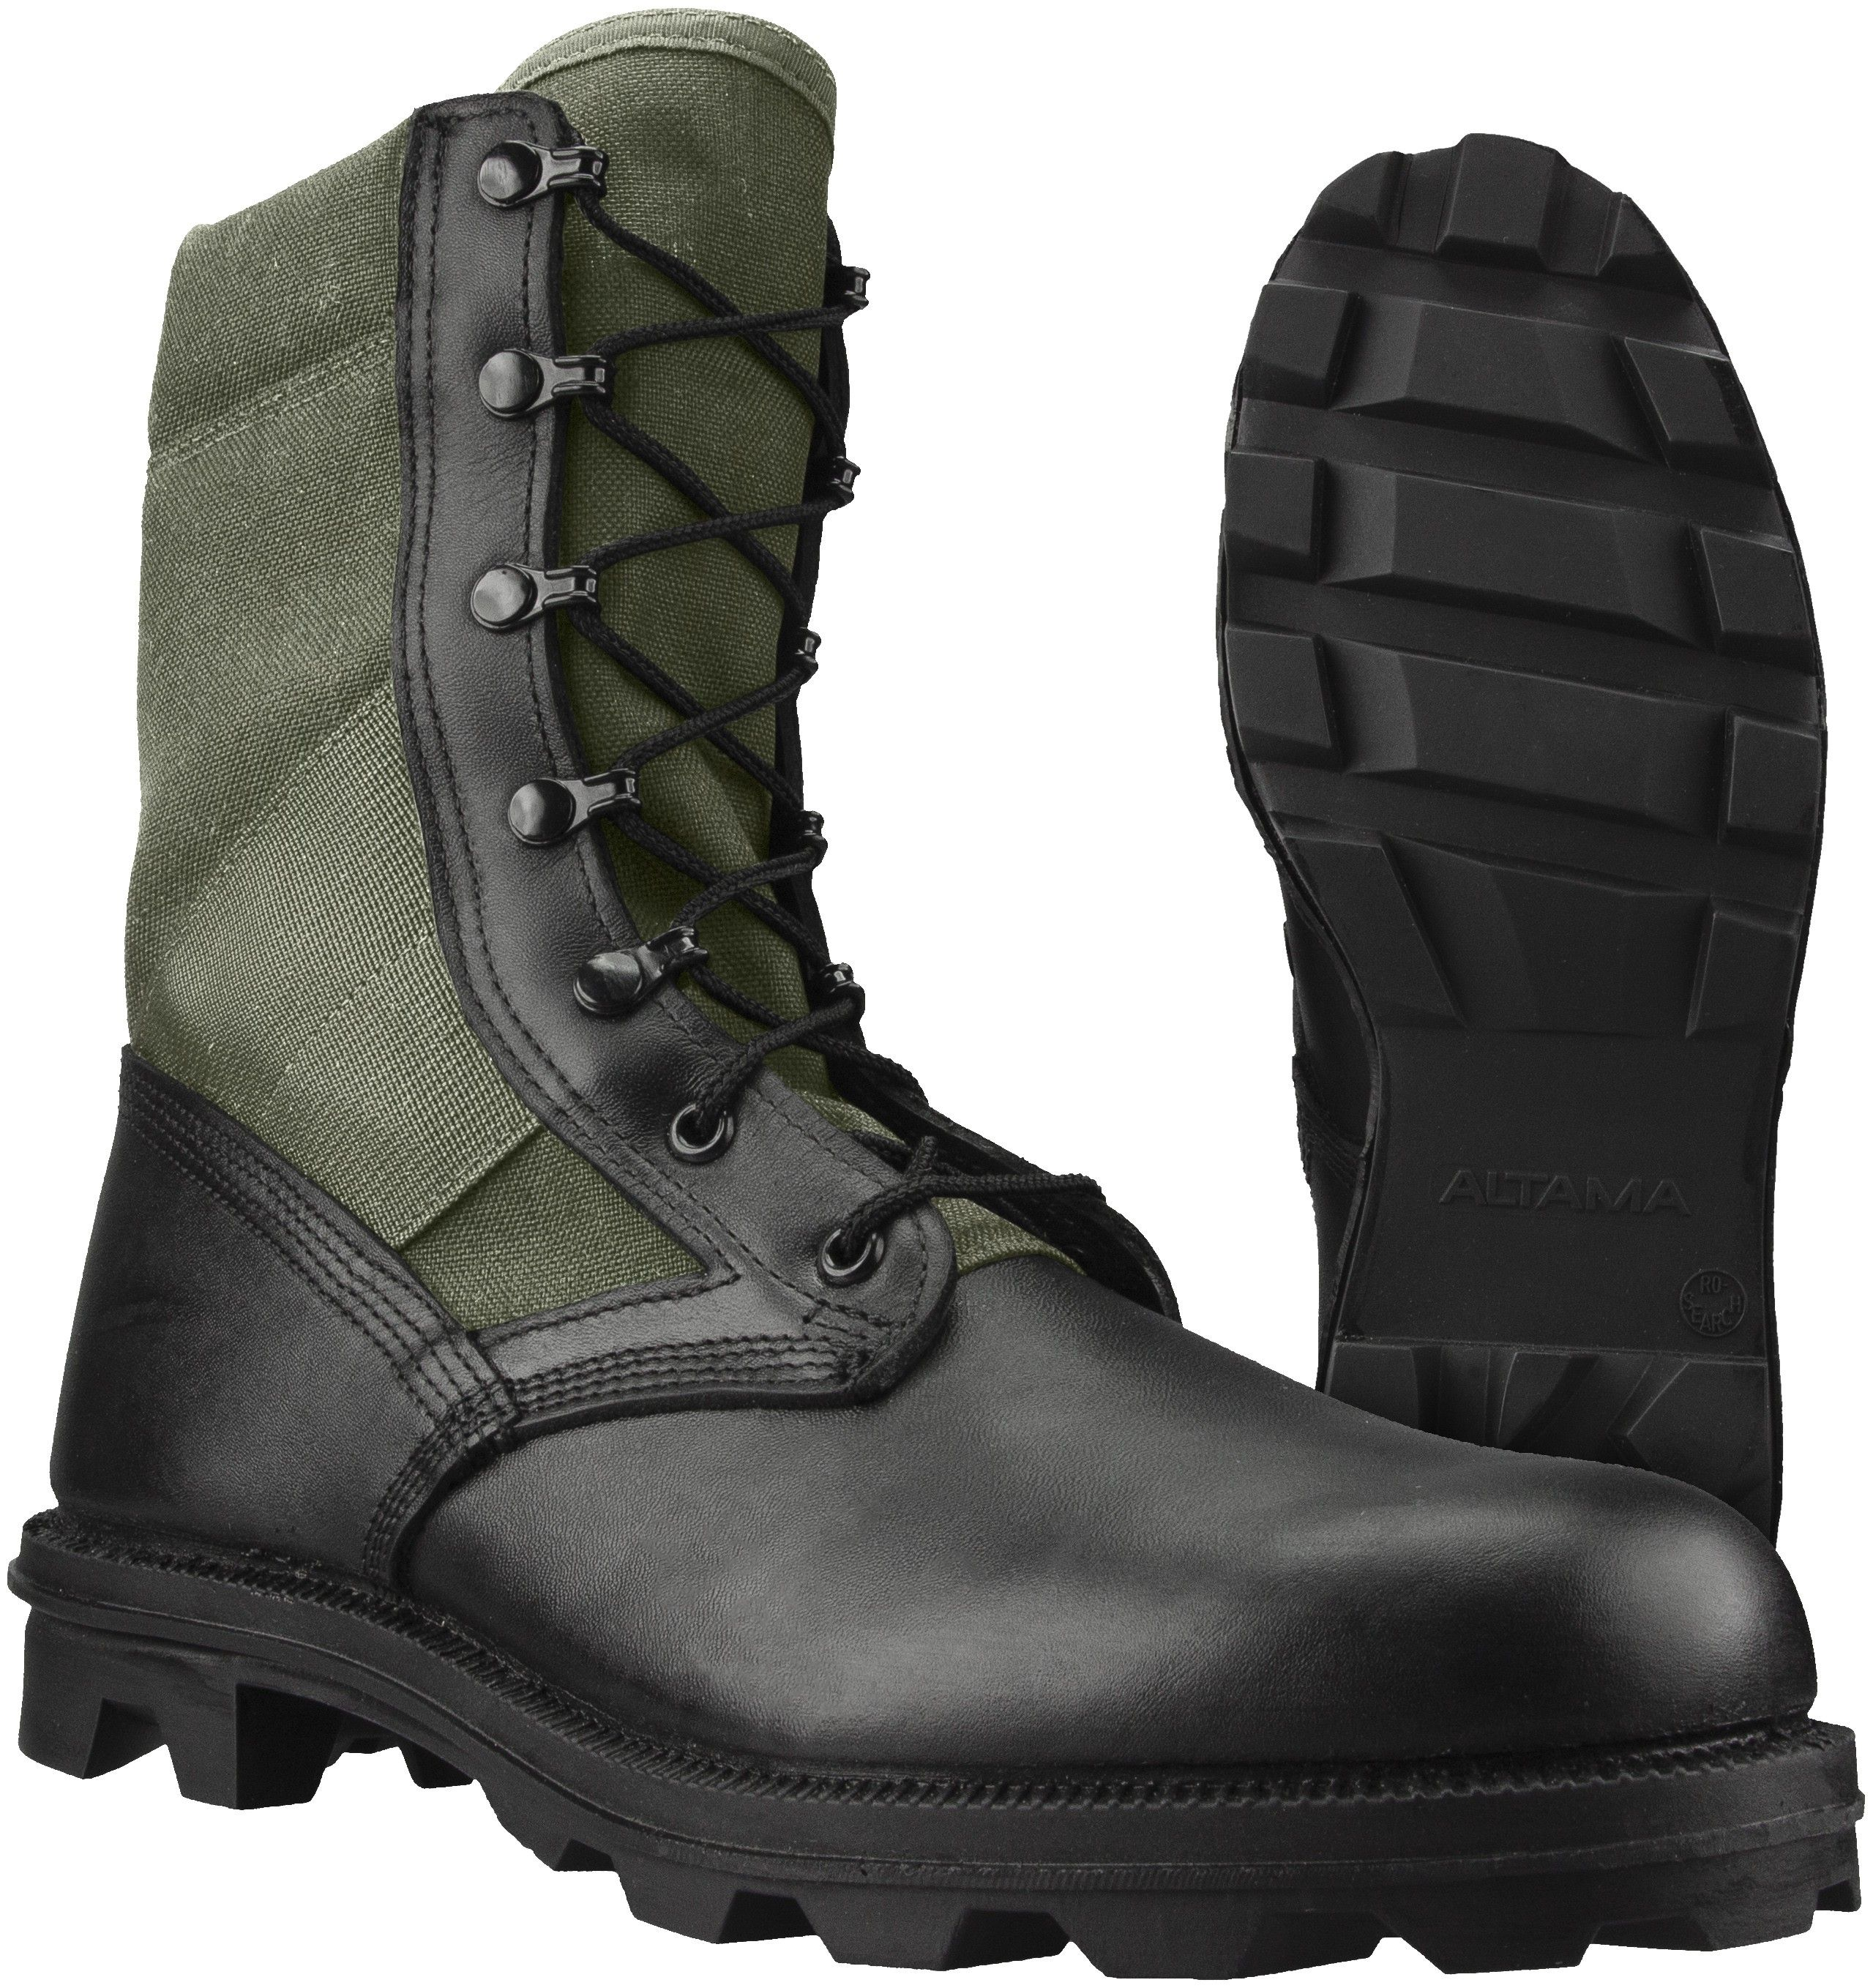 f29e48f34bfa New Jungle Boots coming soon from Altama! Botas, Botas De Combate, Botas  Zapatos